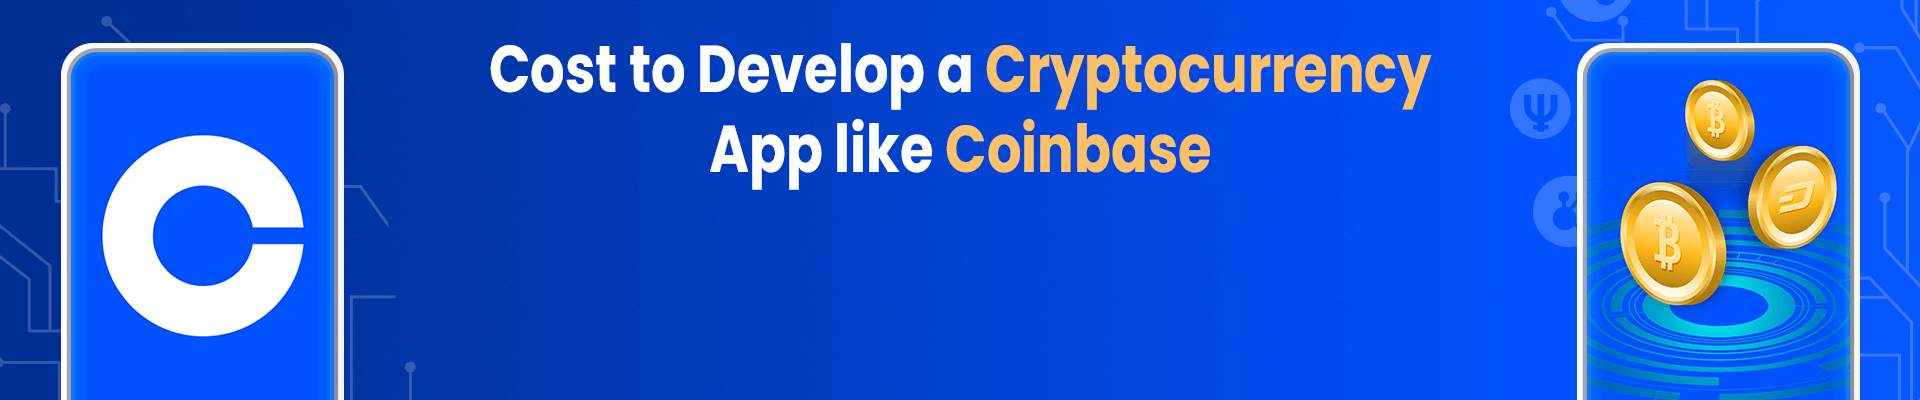 How Much Does It Cost to Create a Cryptocurrency App like Coinbase? [2021]